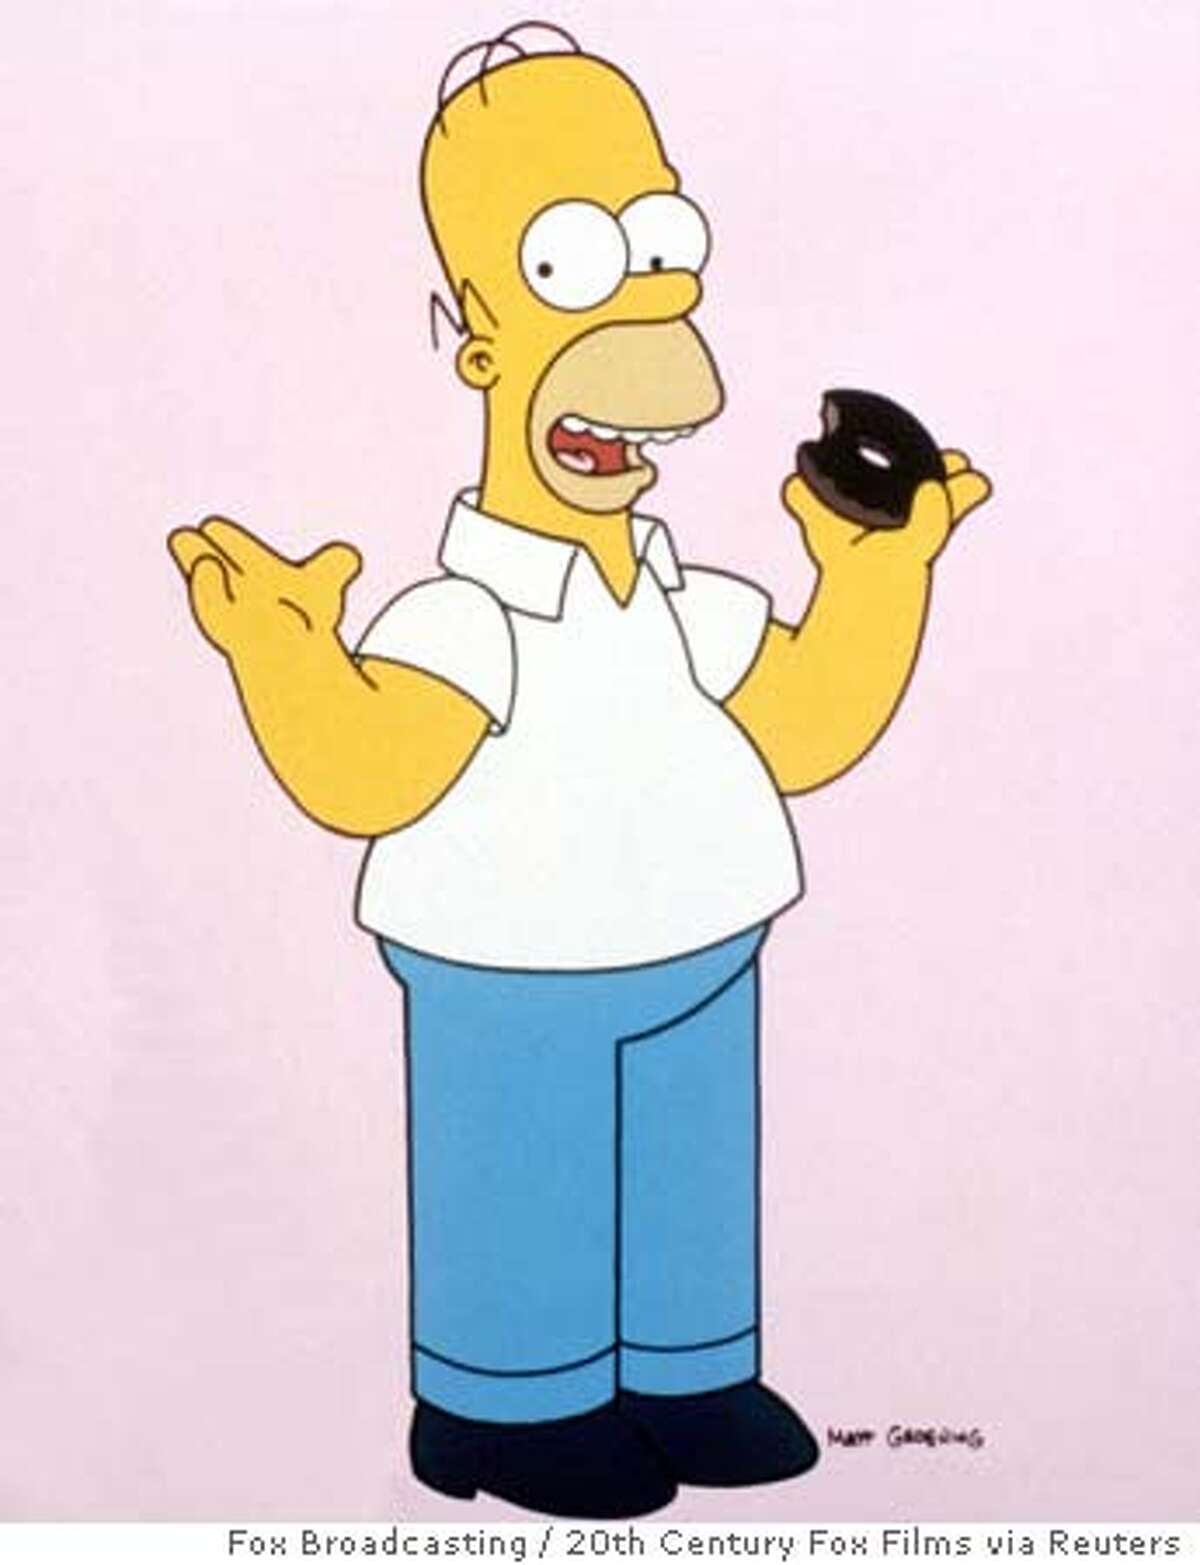 The next edition of The Oxford English Dictionary will include a phrase made famous by Fox Television's Homer Simpson of the animated series